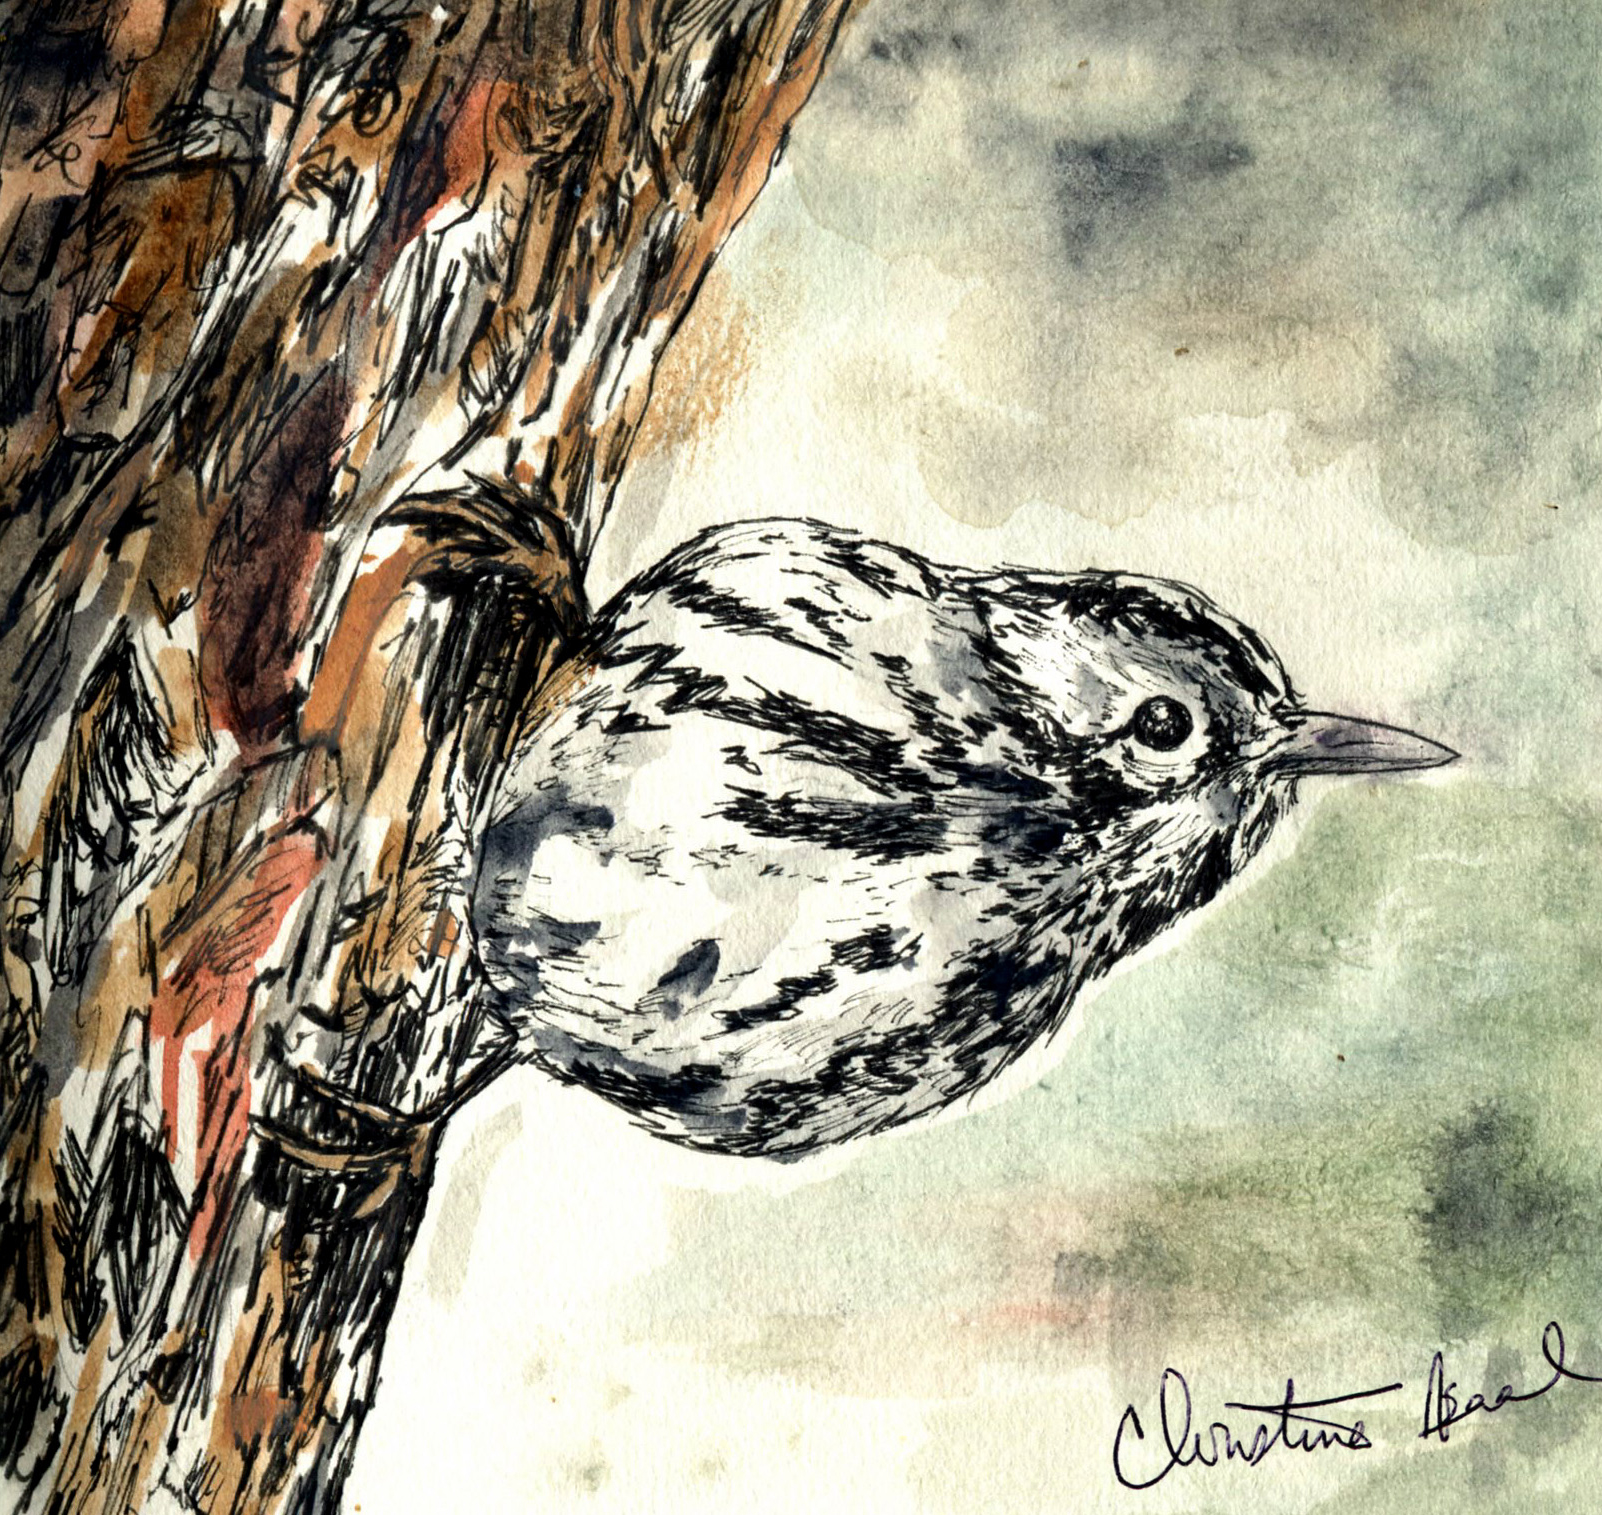 25. Black-and-white Warbler